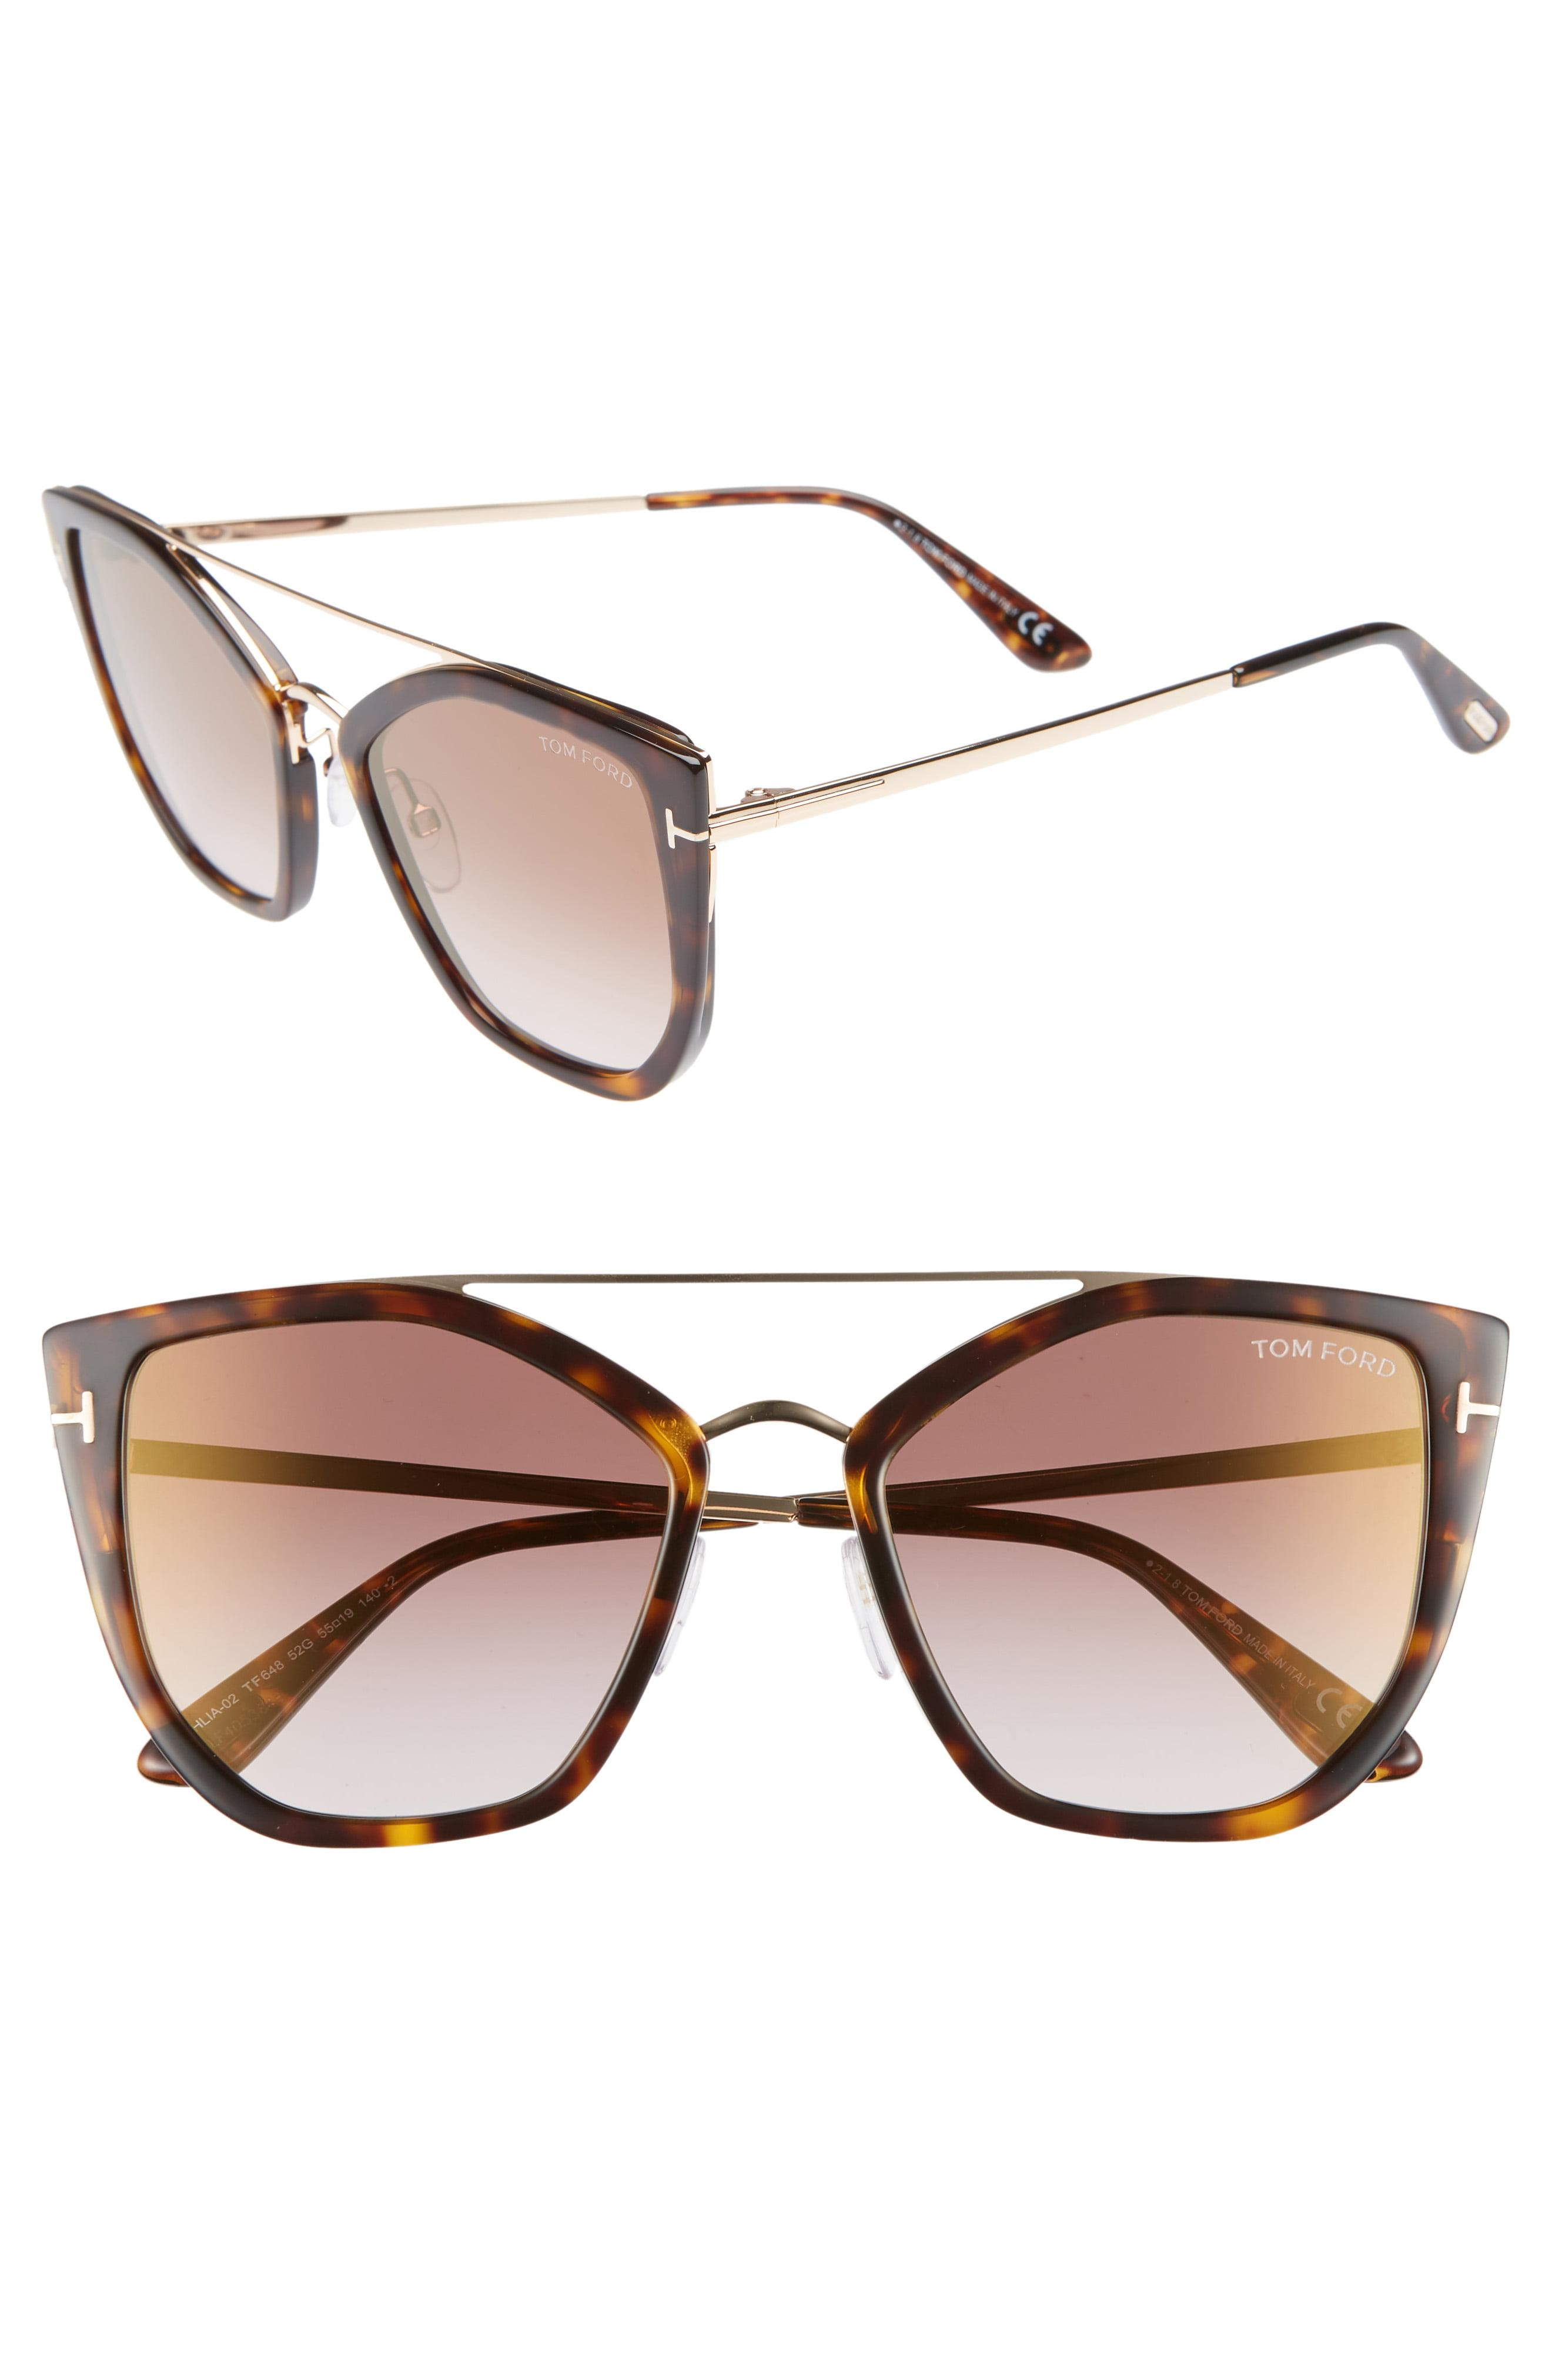 5b0139603d41 Tom Ford - Brown Dahlia 55mm Sunglasses - - Lyst. View fullscreen